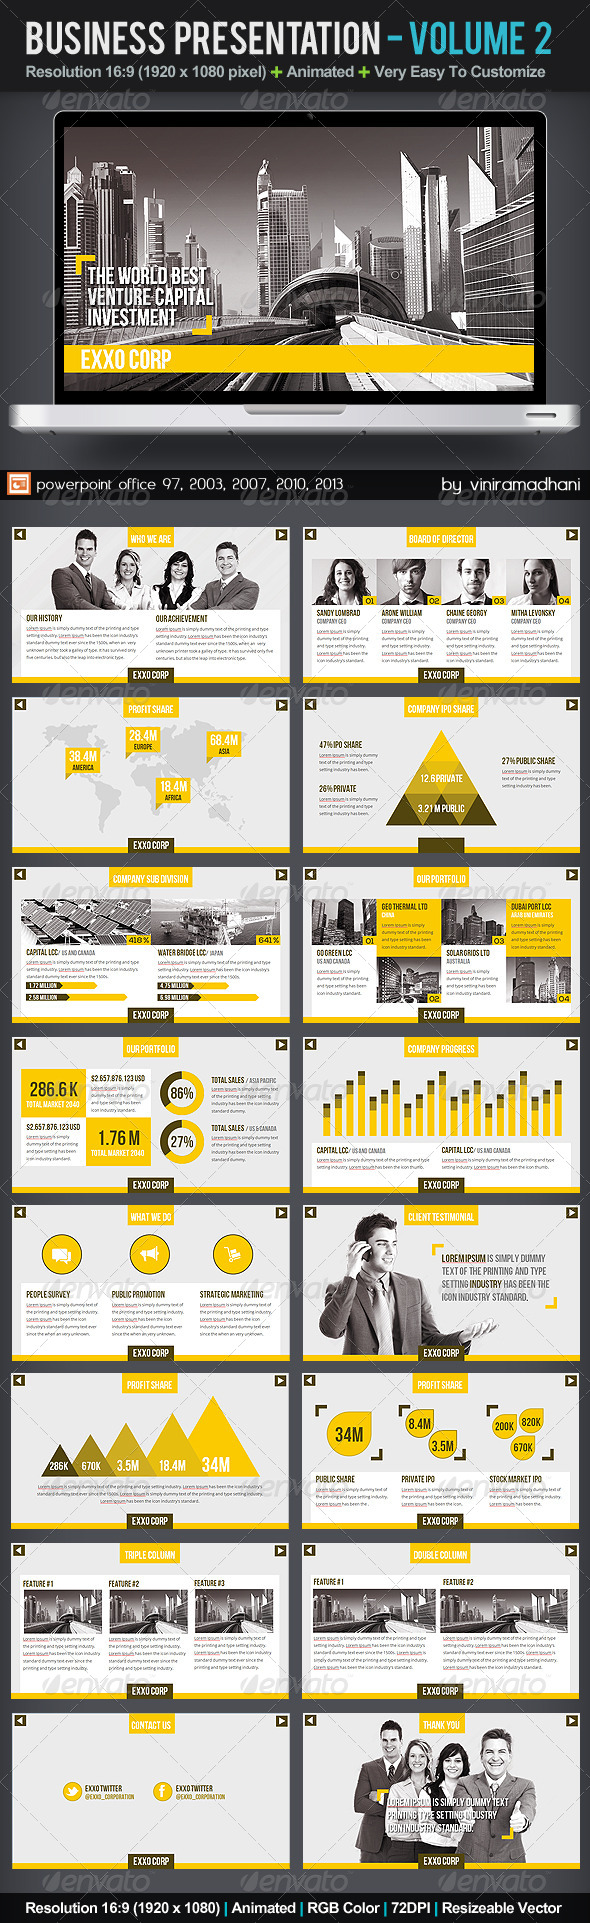 GraphicRiver Business Presentation Volume 2 5861356